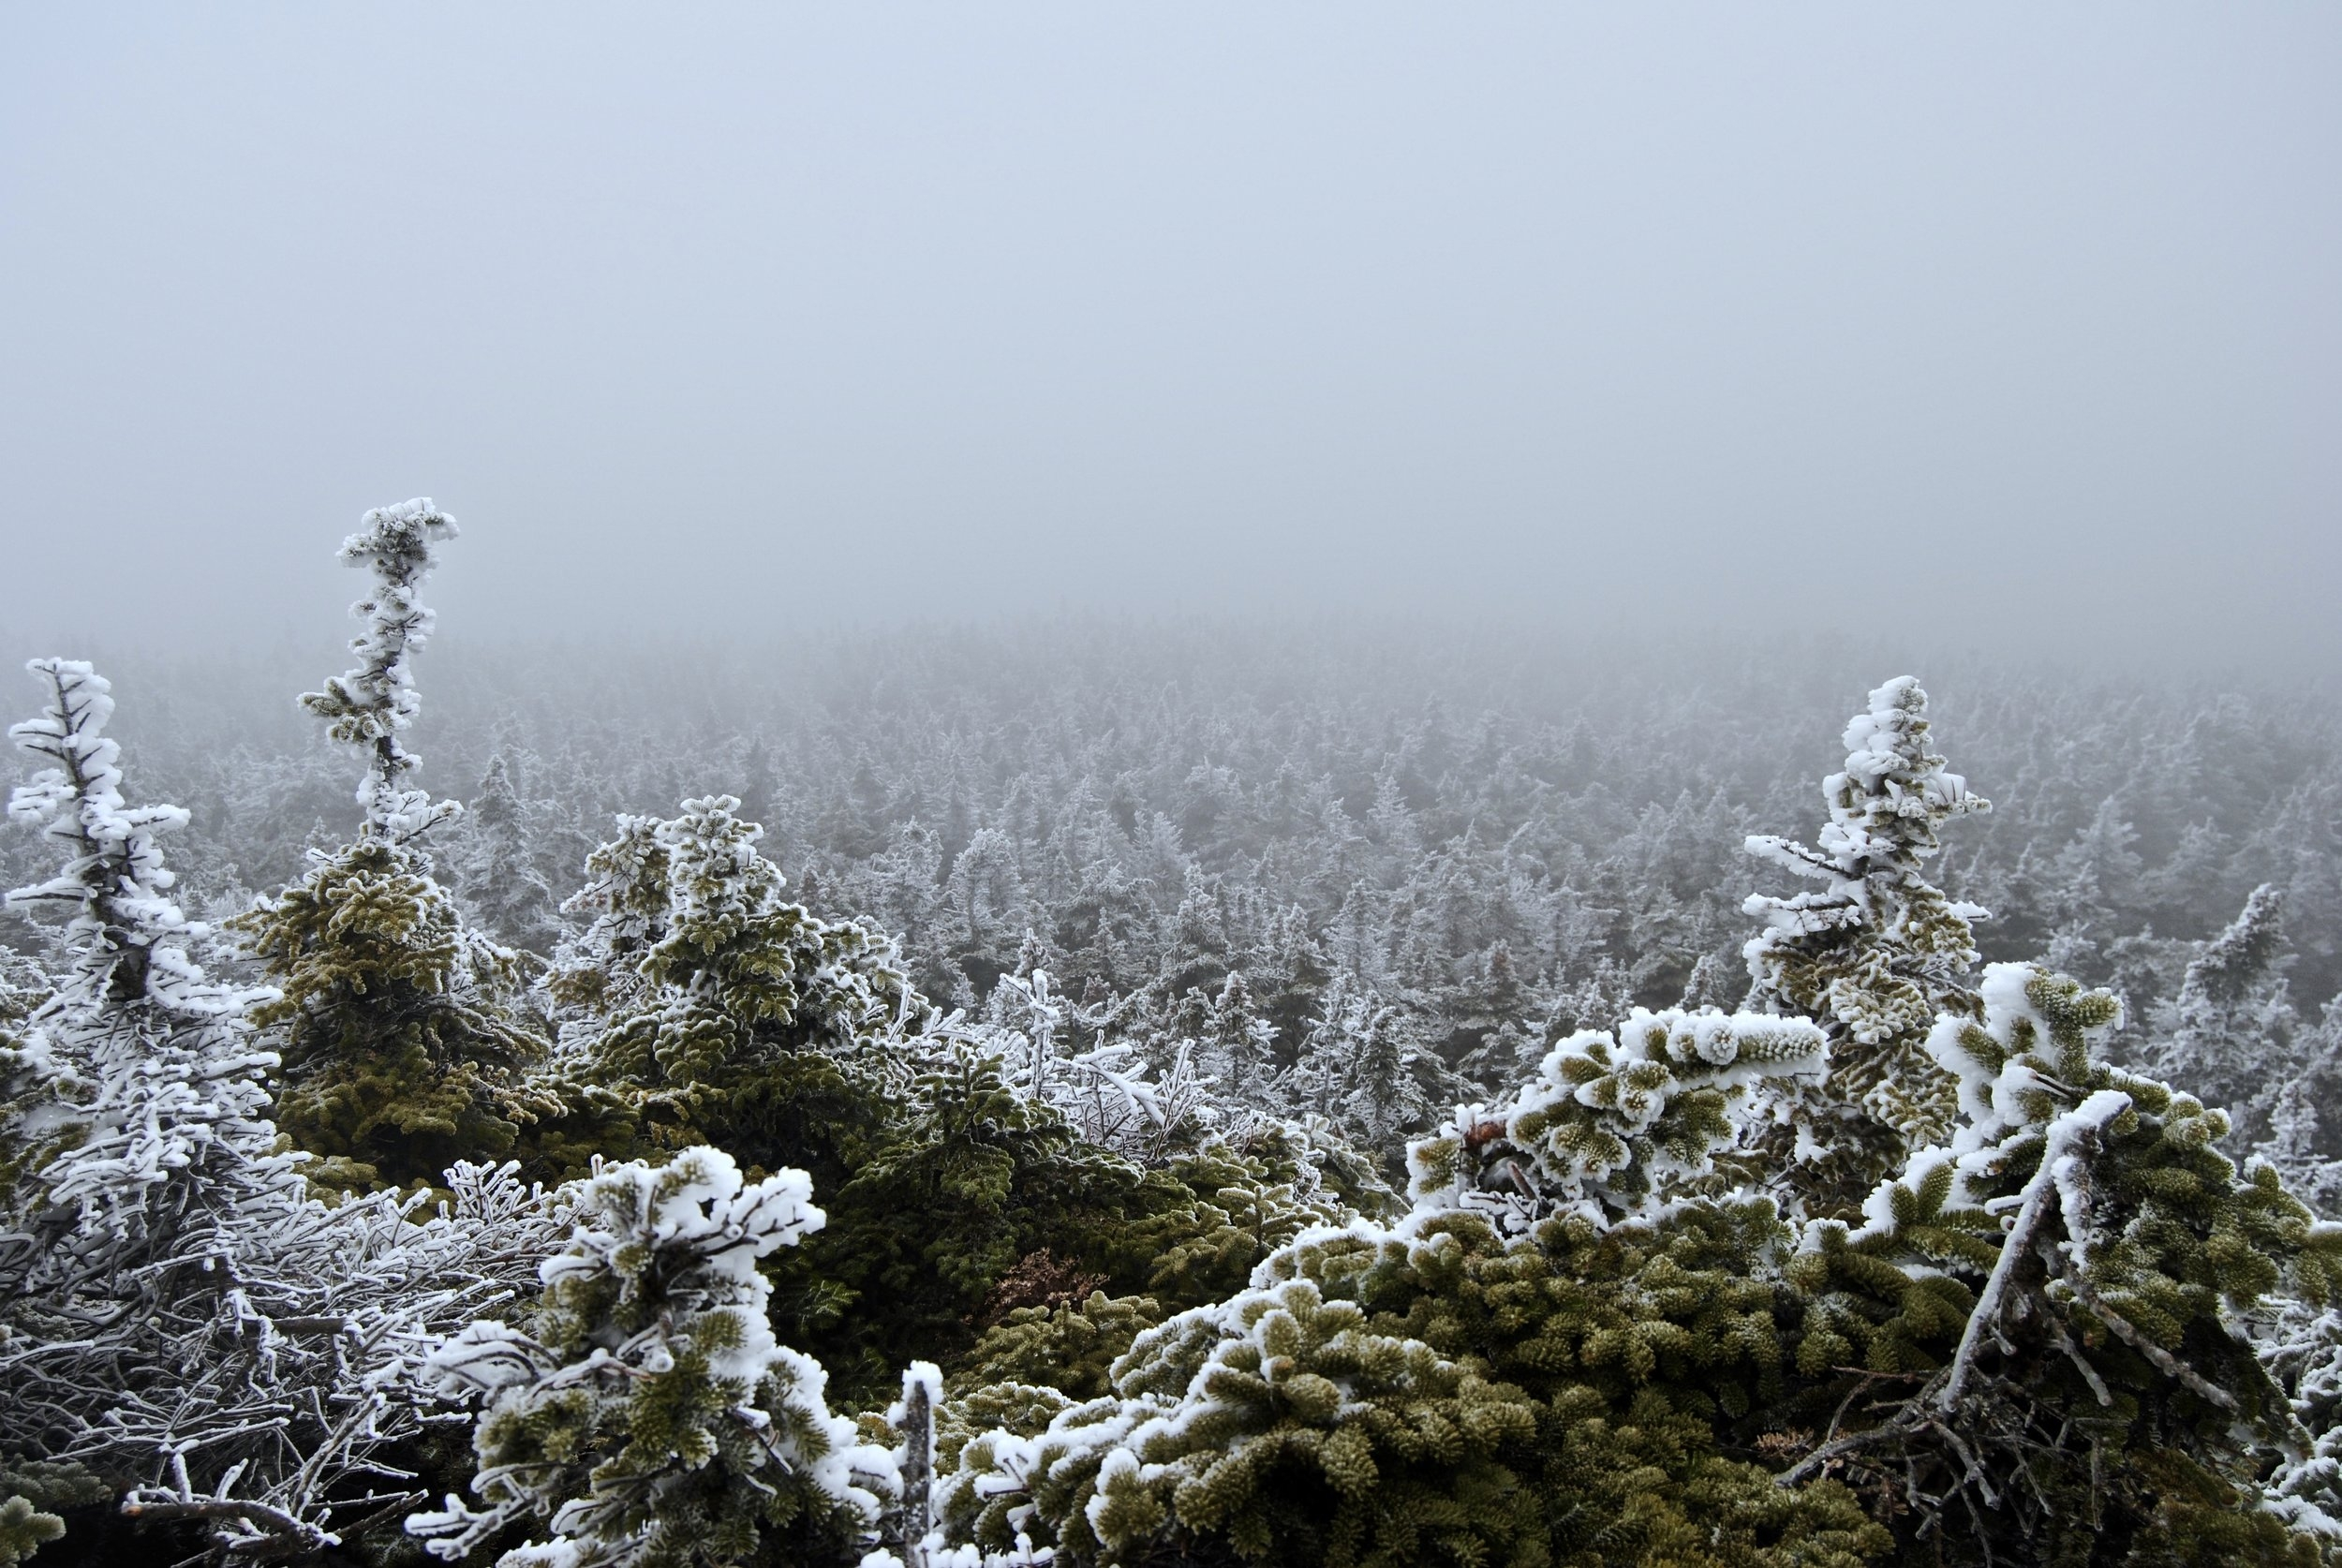 No view, per usual winter weather. But those pines...